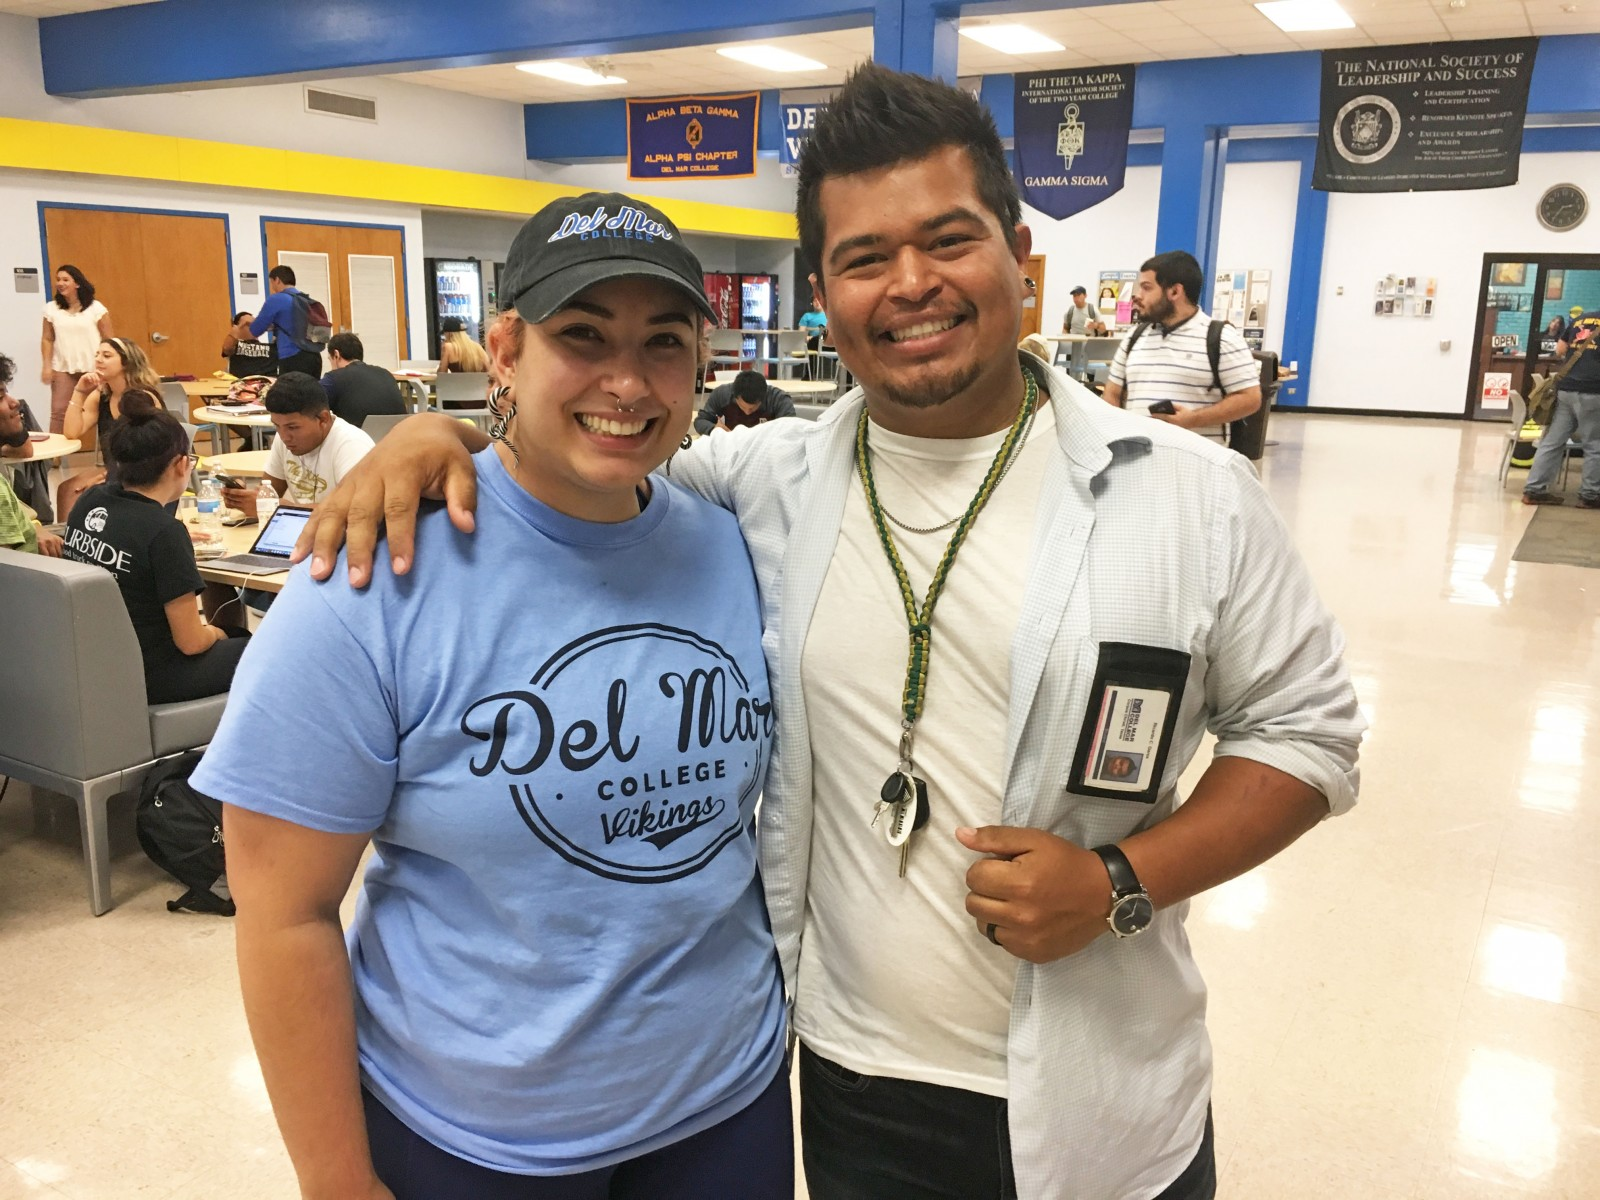 DMC Students Danielle and Ricardo Garza_Hurricane Harvey Assistance in Houston